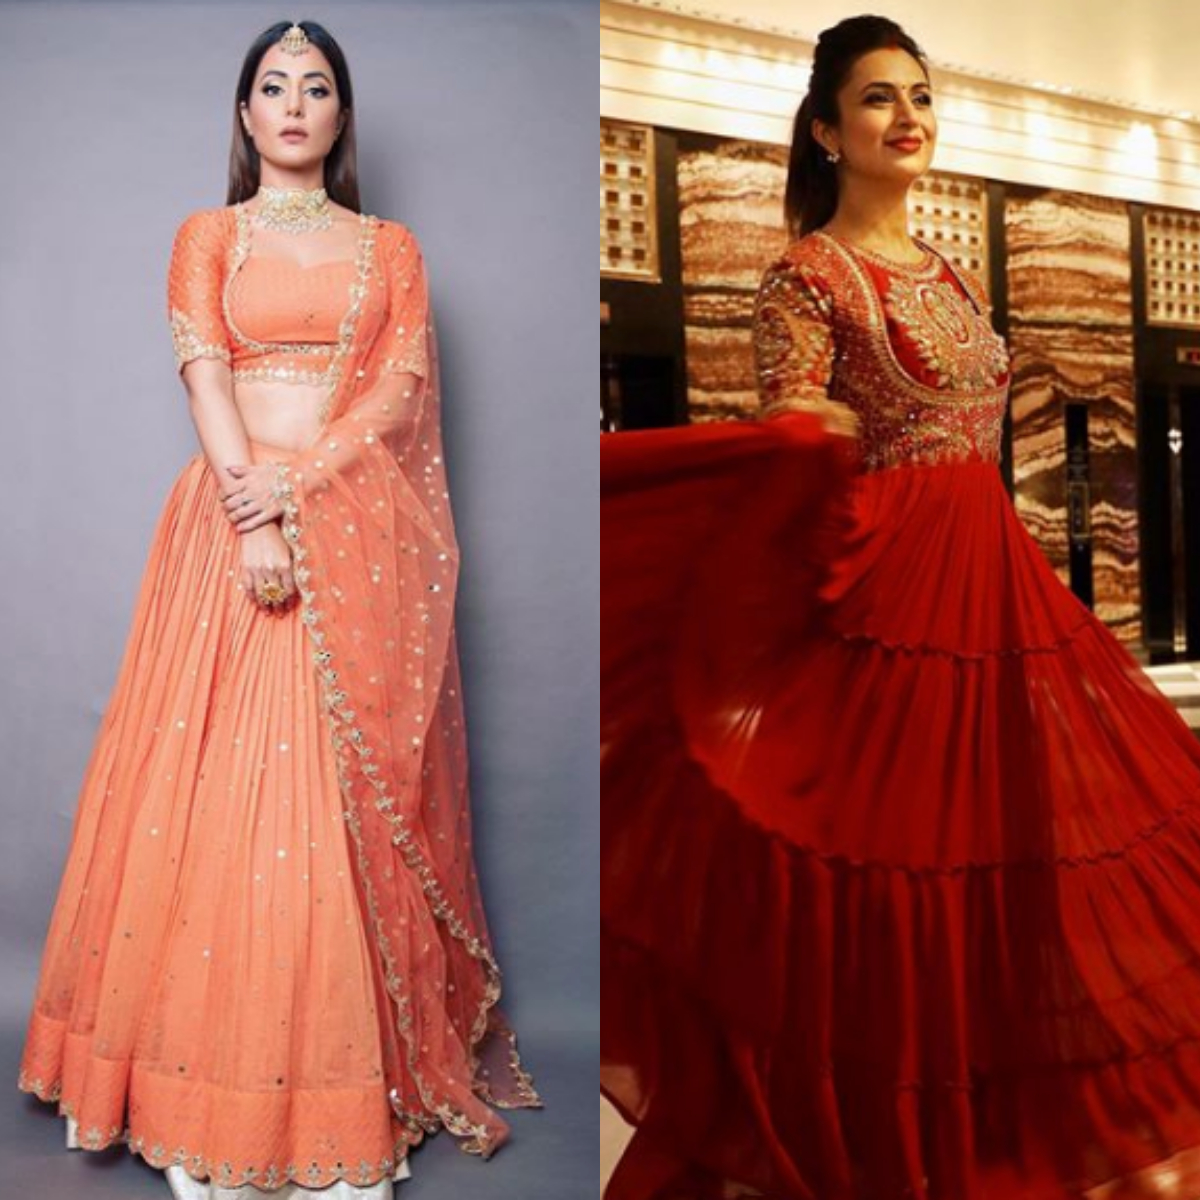 Hina Khan, Divyanka Tripathi and more are giving us major FESTIVE outfit goals with their desi looks